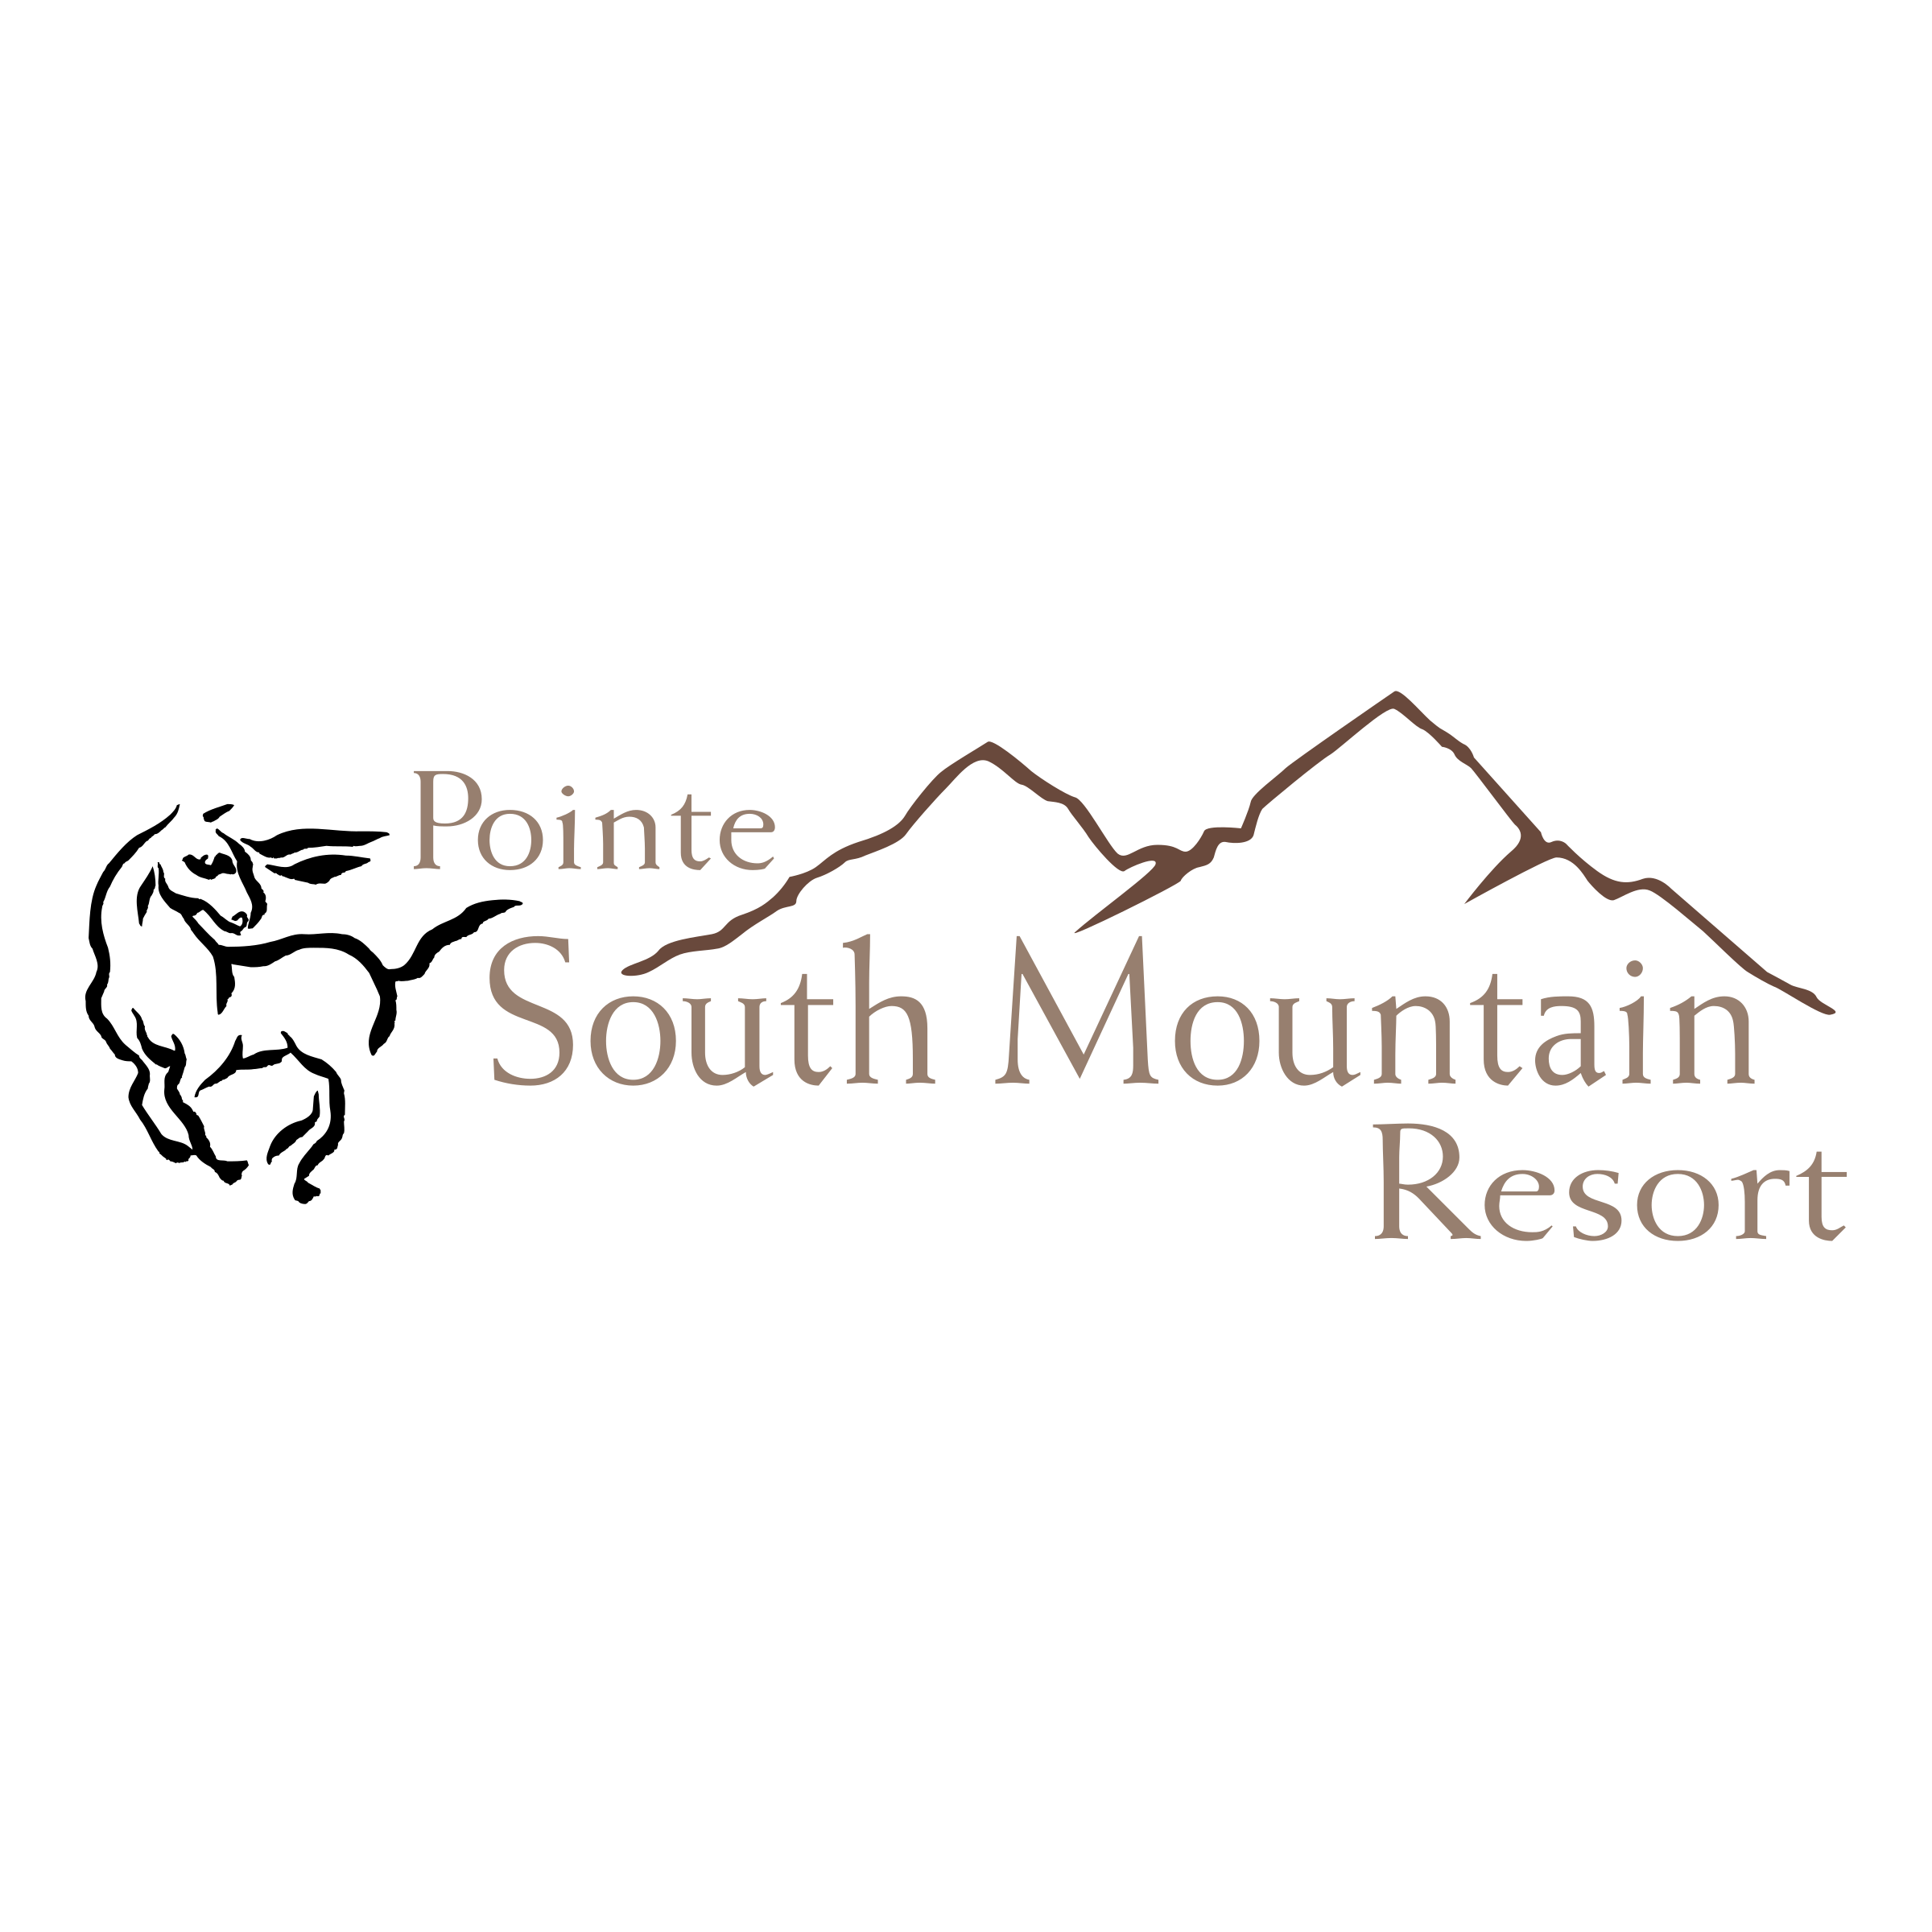 pointe south mountain resort logo png transparent & svg vector